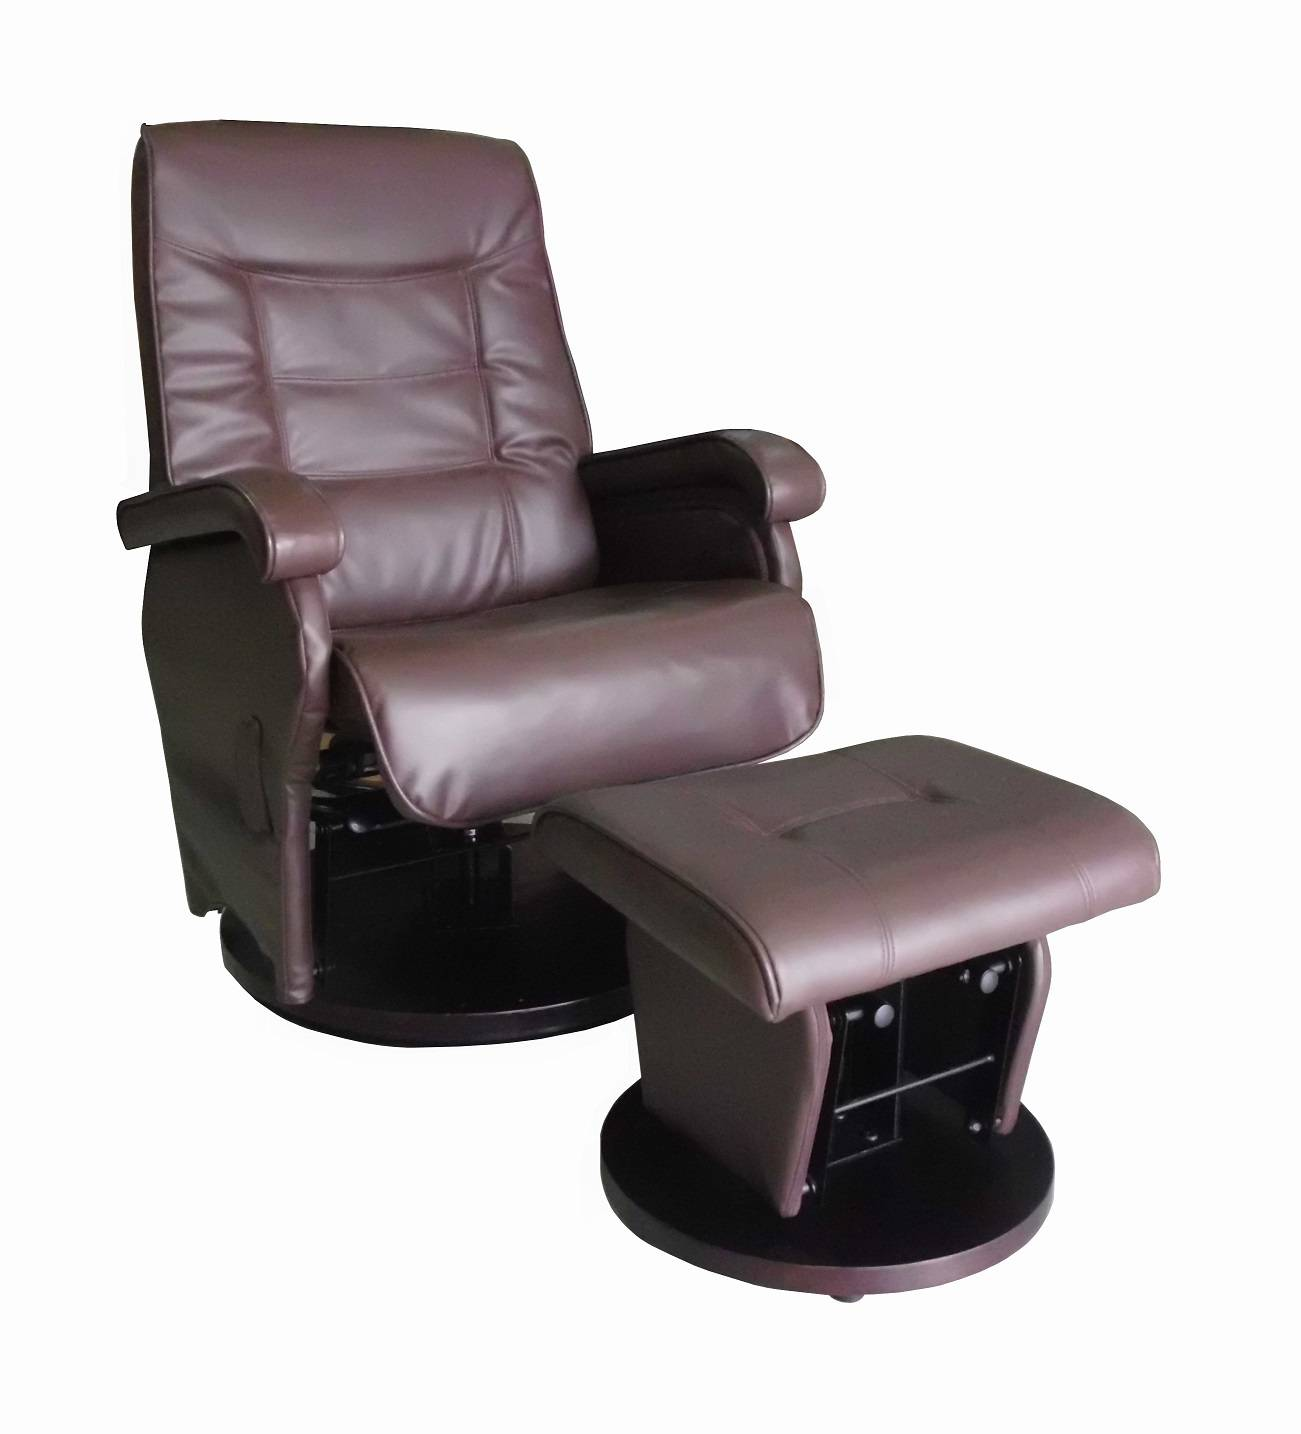 BH-8214-3 Gliding Rocking Recliner Chair, Home Furniture, House Furniture